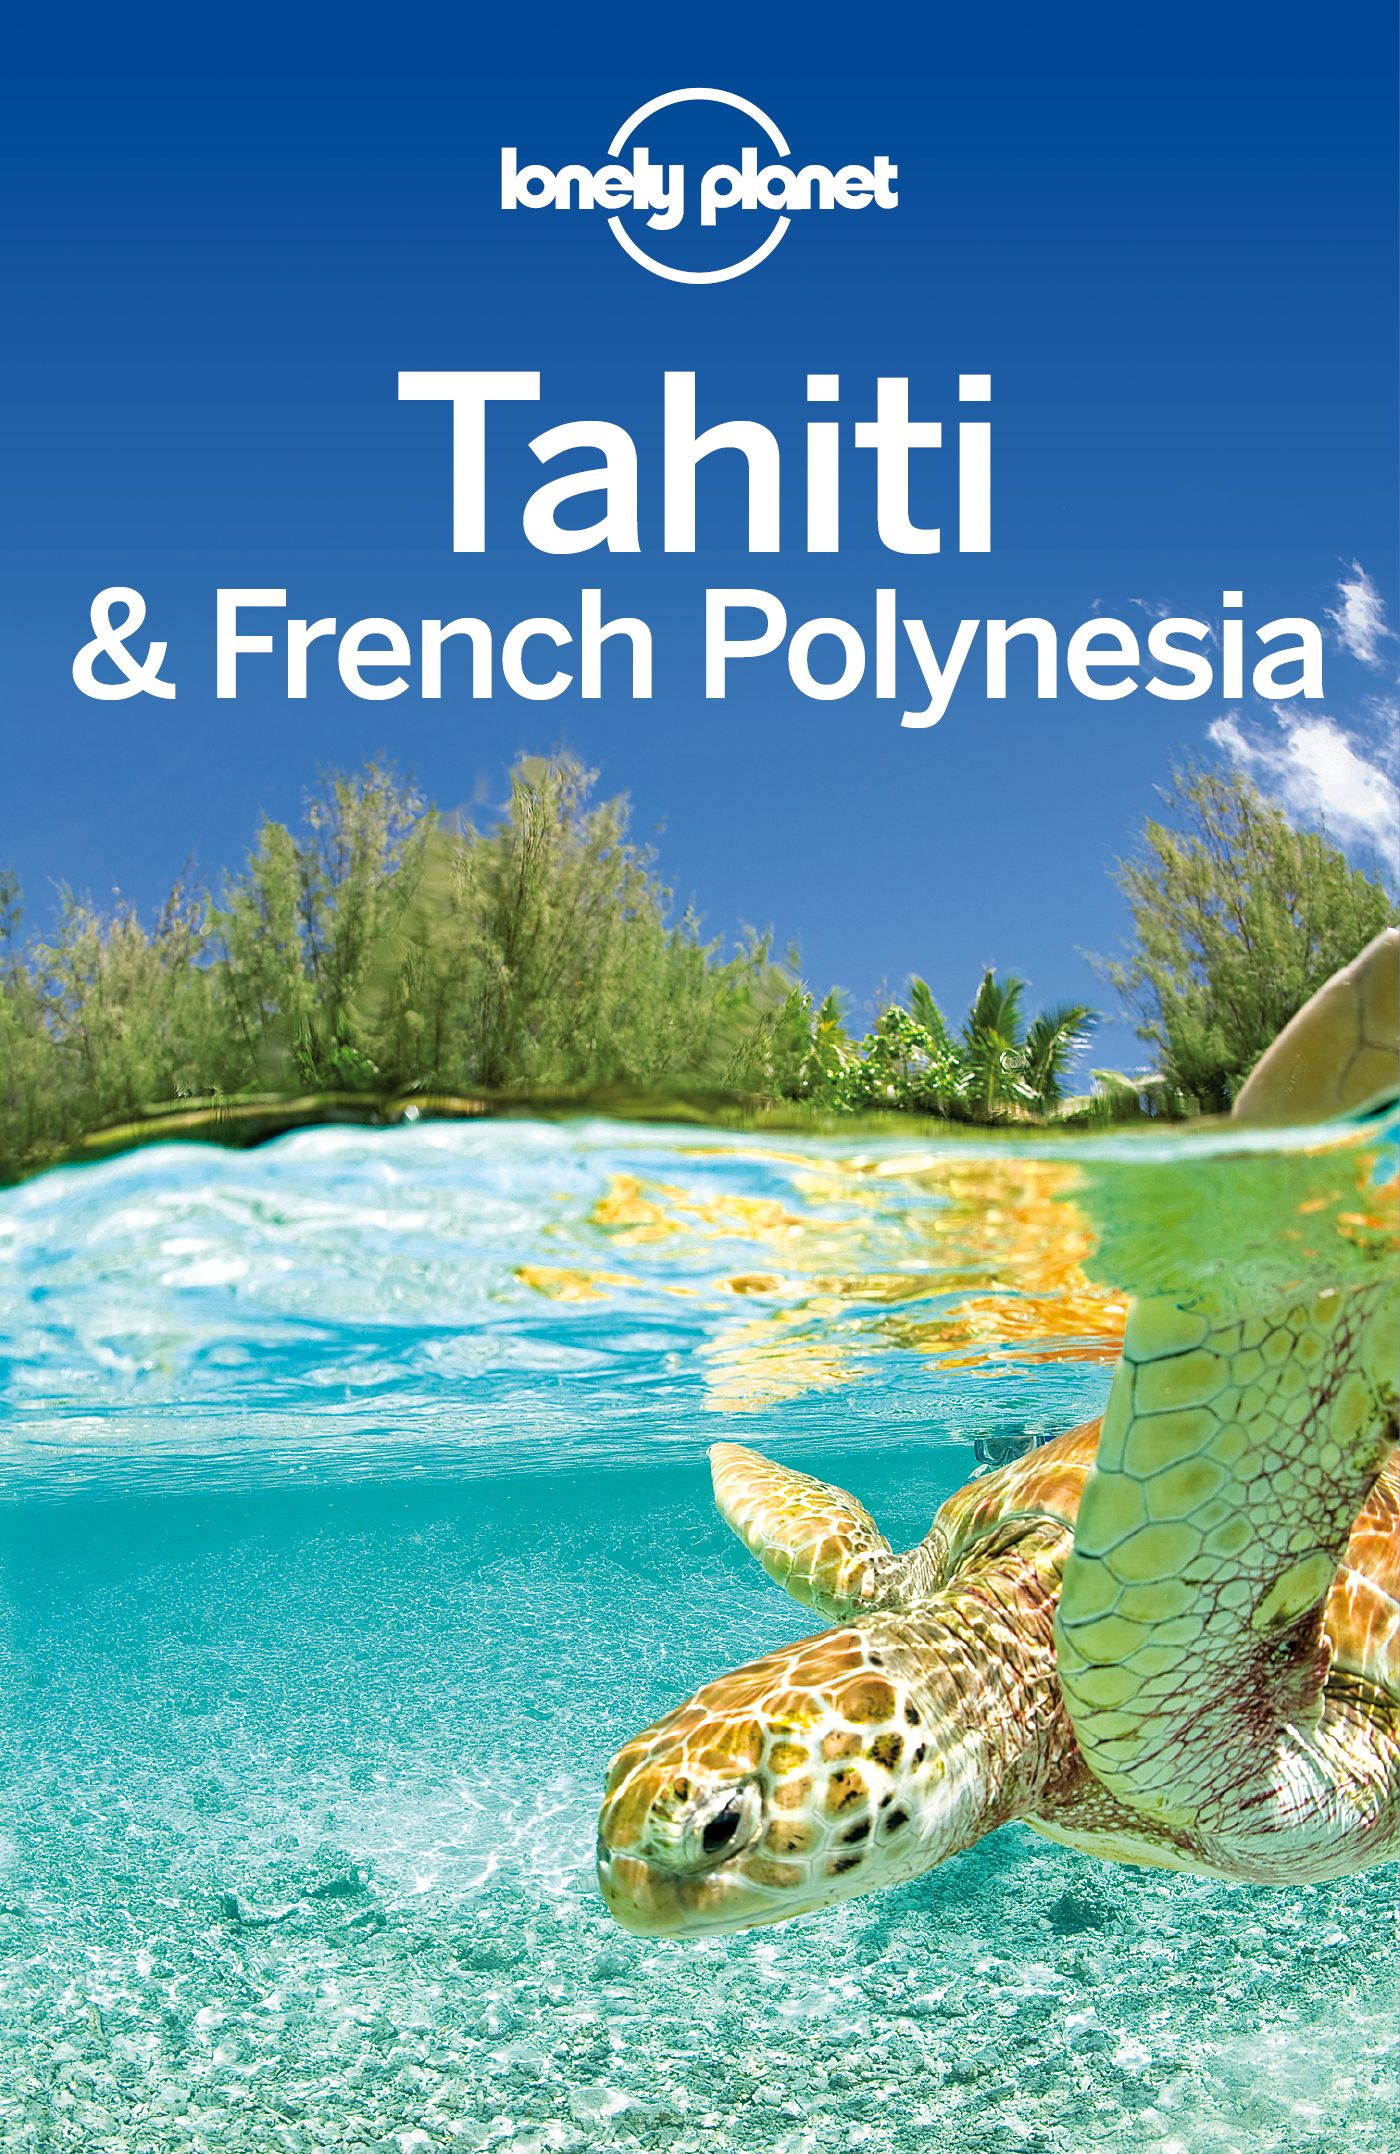 """Just sliced my ebook """"Lonely Planet Tahiti & French Polynesia"""". Get a slice or remix slices to create your own custom travel guide."""